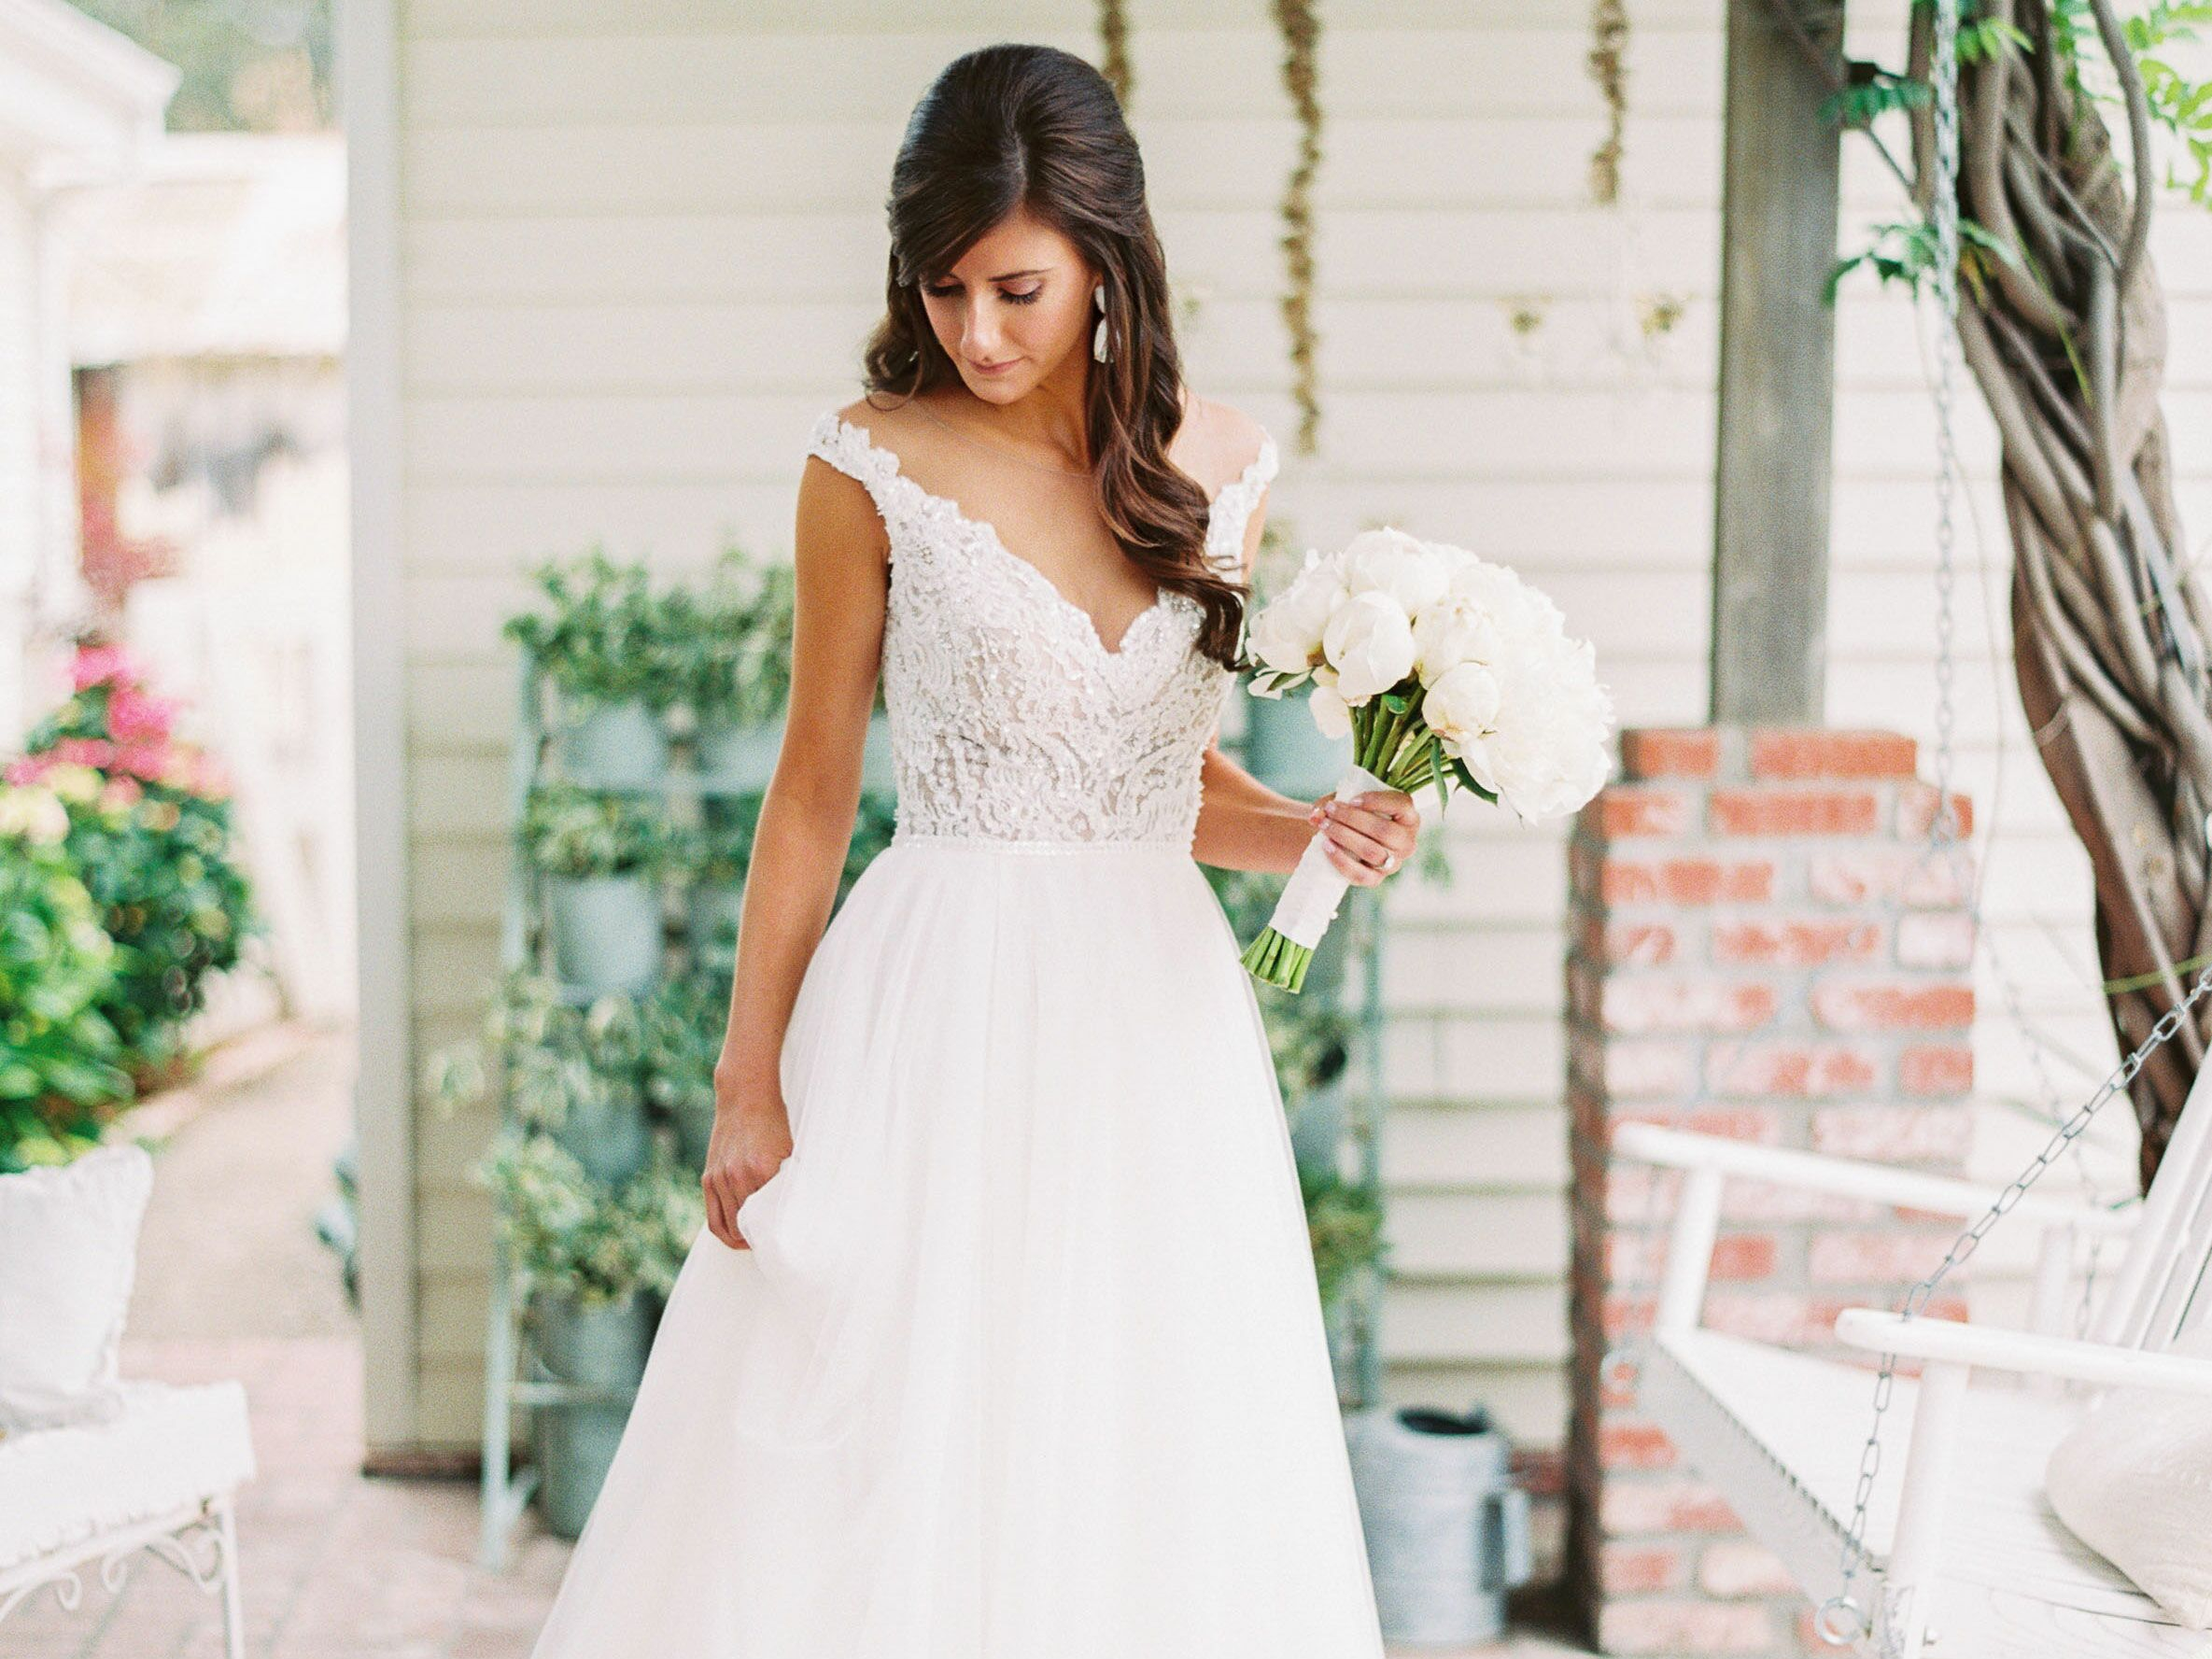 Match Your Hairstyle to Your Wedding Dress Neckline